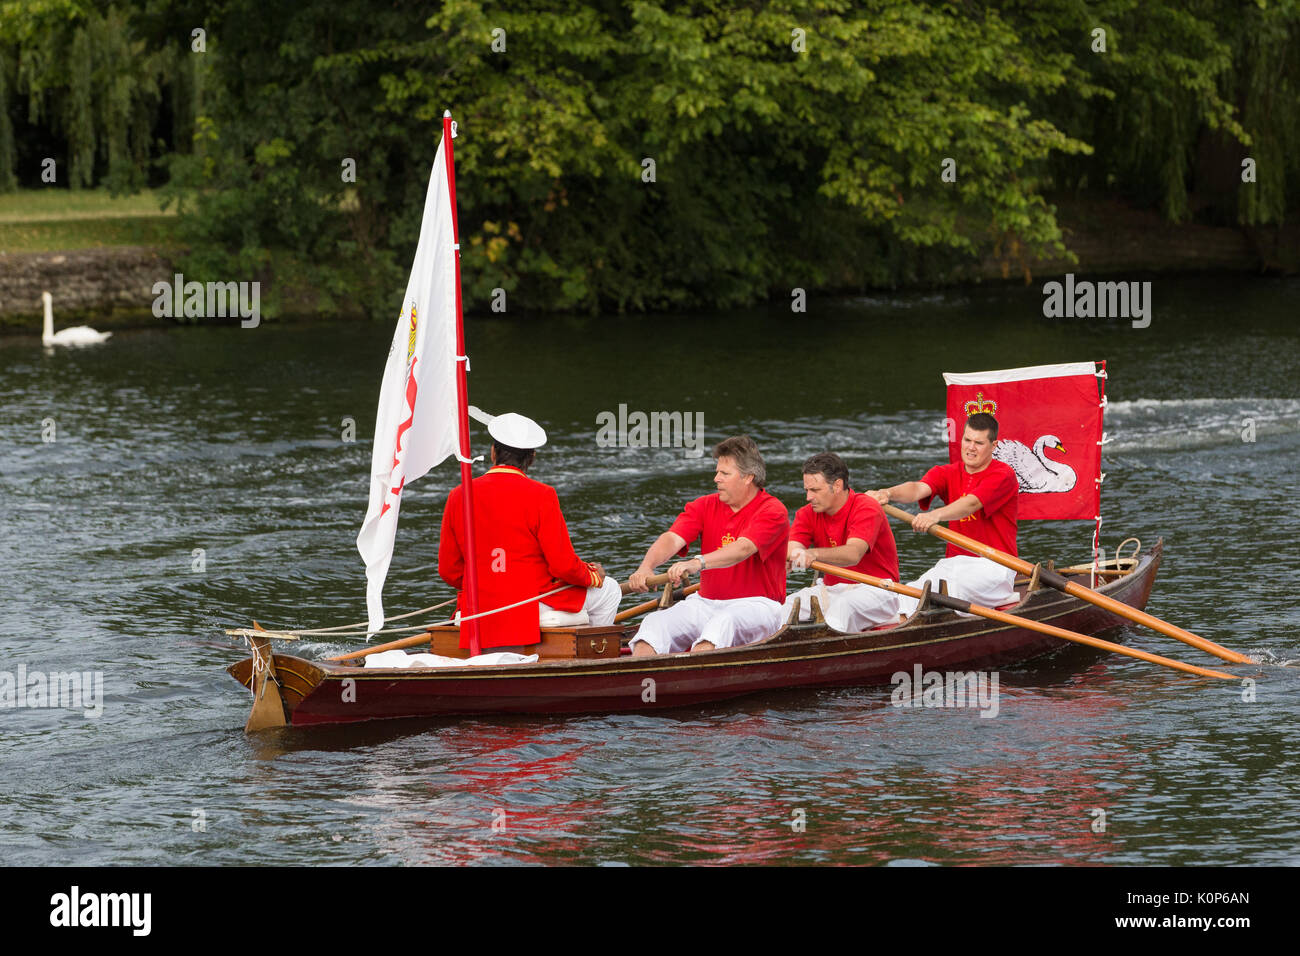 Eton, UK. 18th July, 2017. The Queen's Swan Marker, David Barber MVO, departs with Swan Uppers from Eton Bridge during Swan Upping. Swan Upping is an  - Stock Image